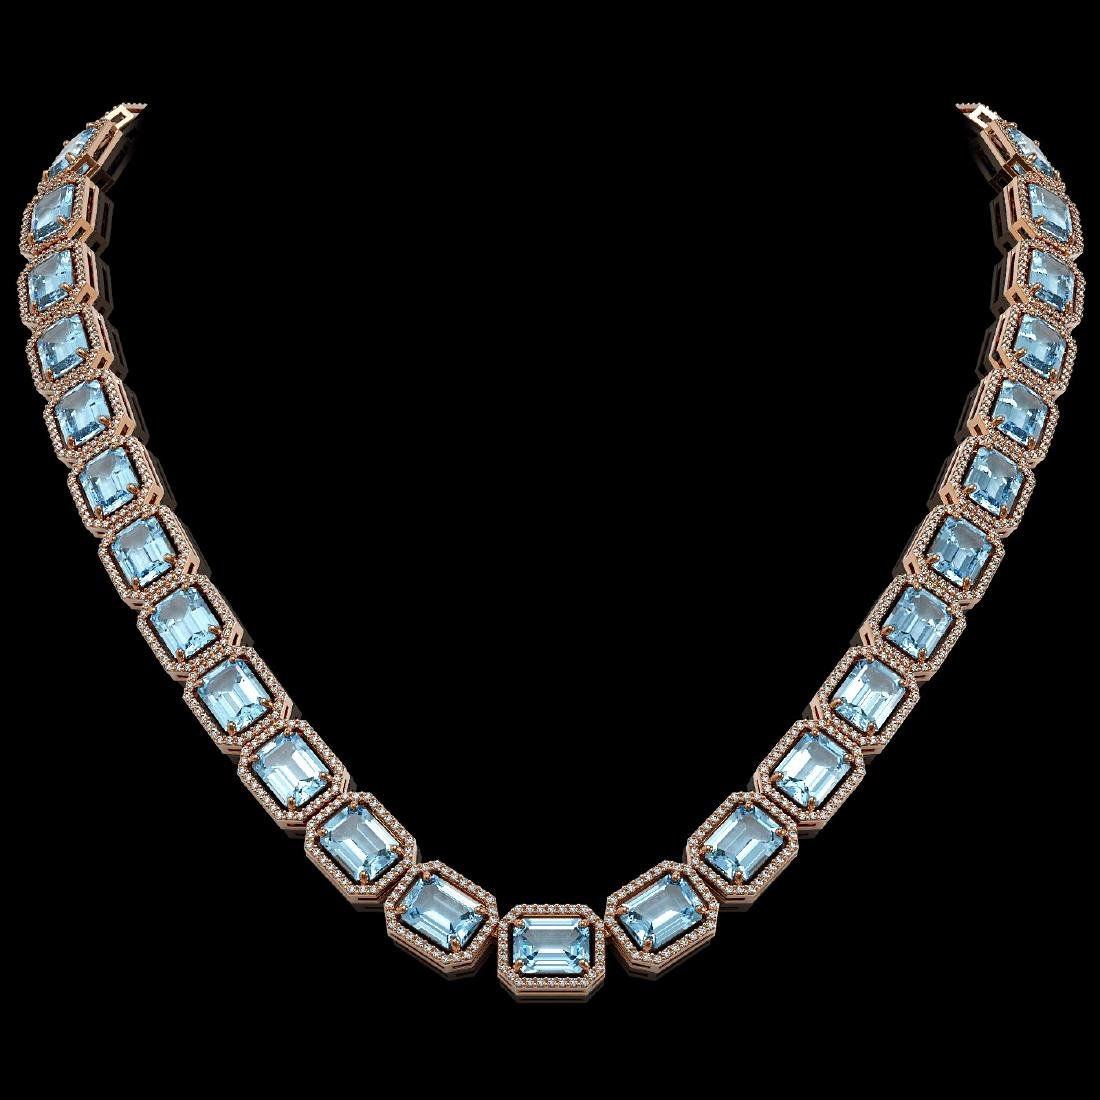 80.98 CTW Aquamarine & Diamond Halo Necklace 10K Rose